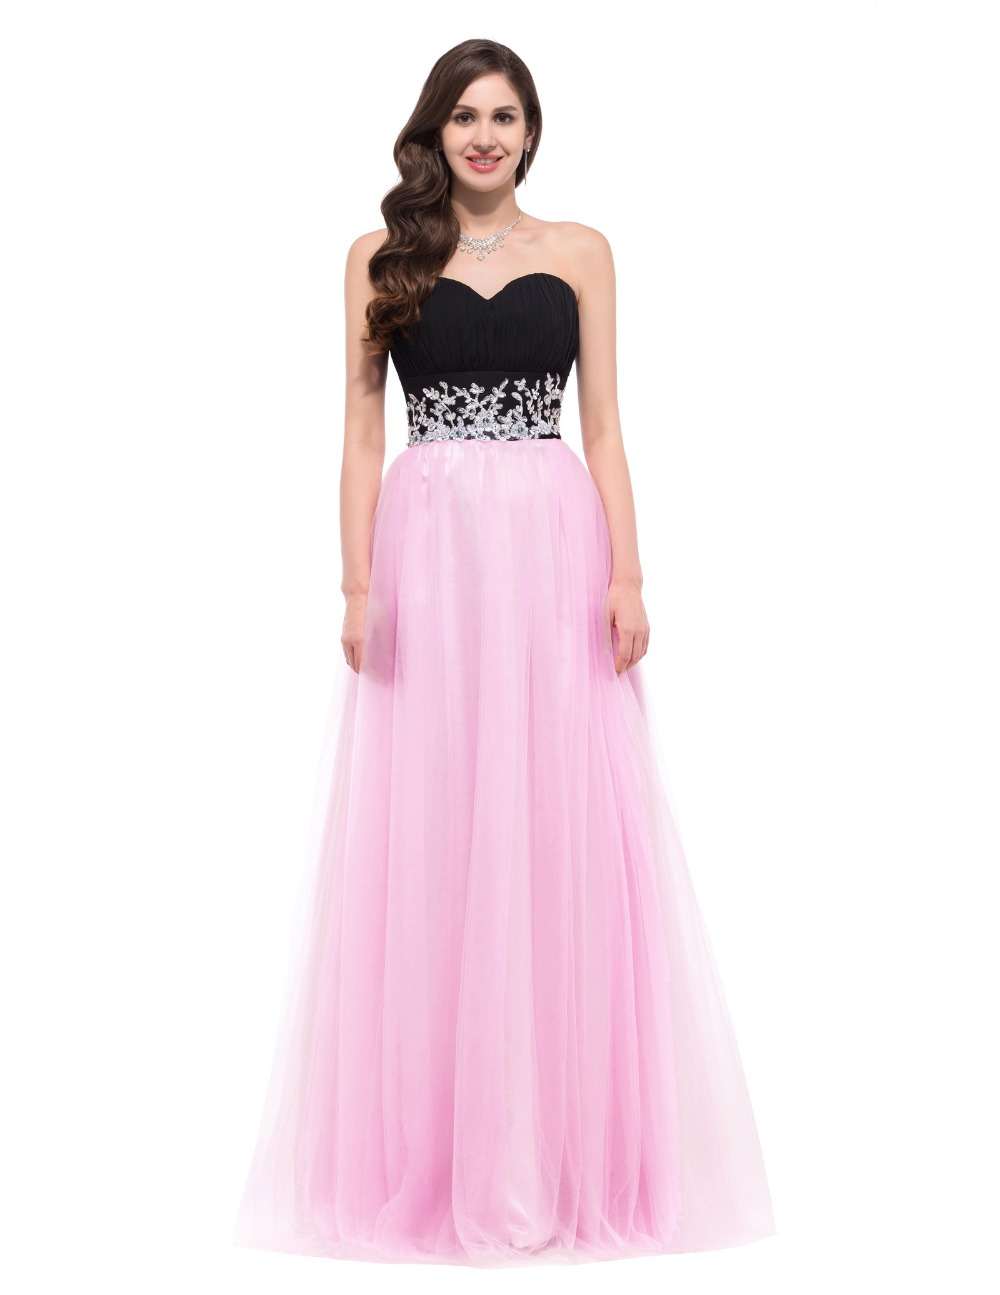 Pink And Black Prom Dress - Ocodea.com